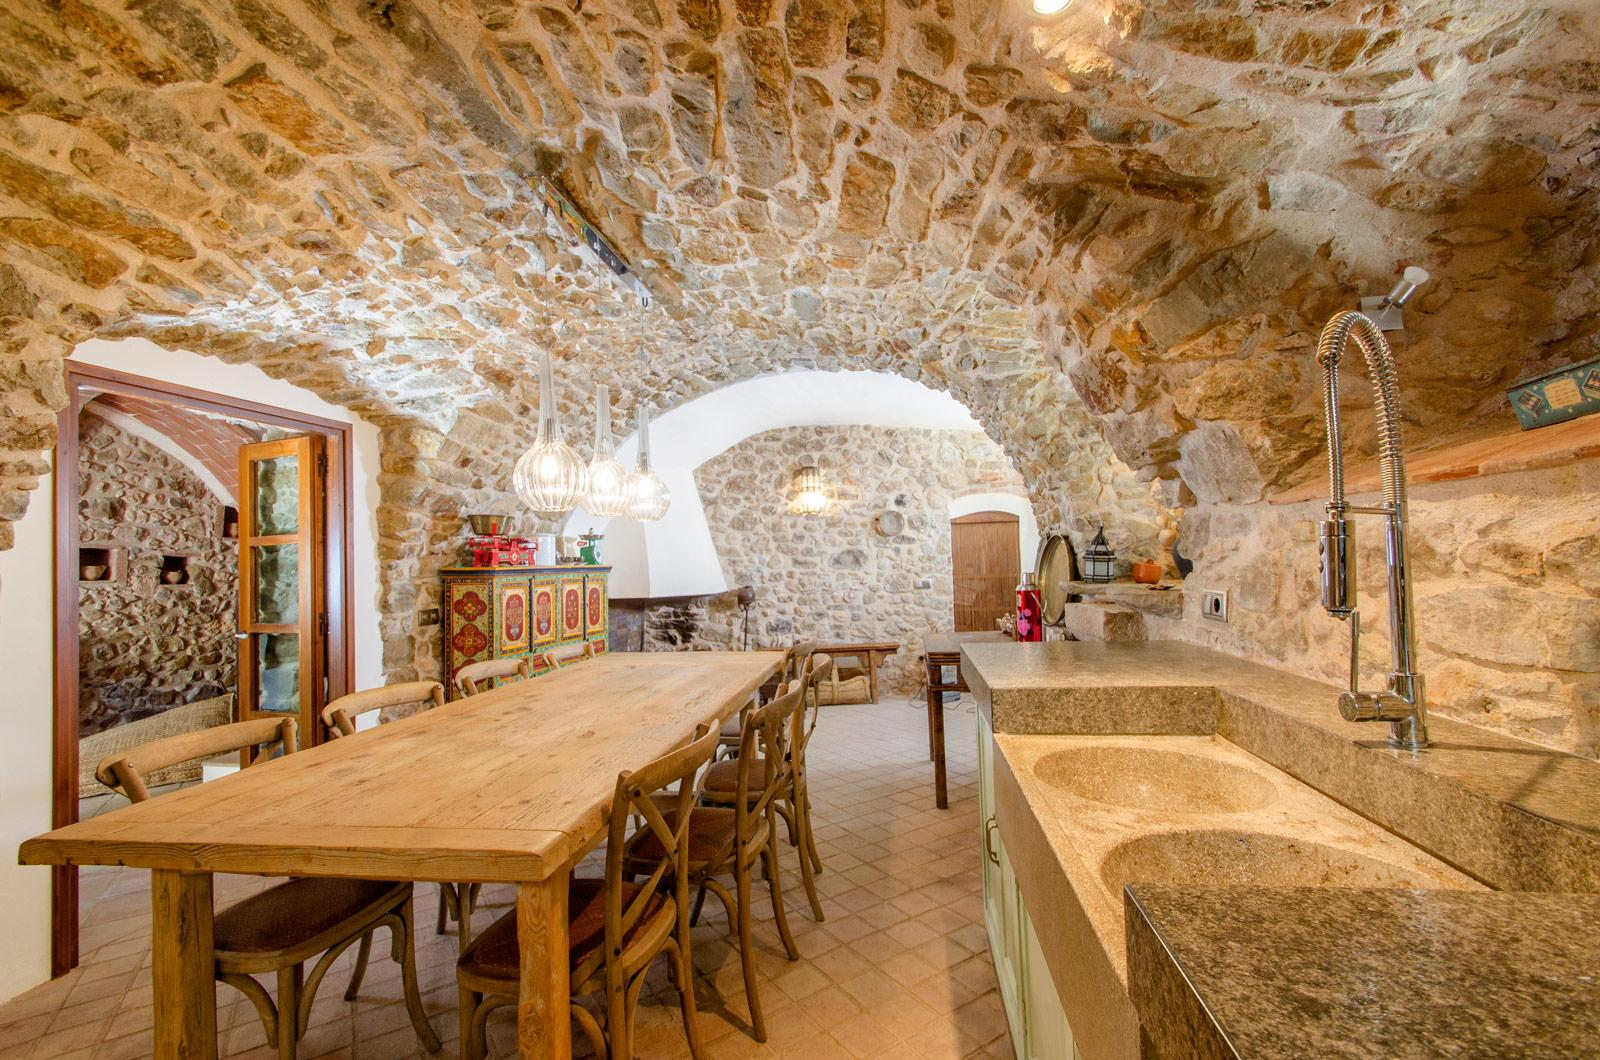 6. Villa for sale in Girona - Traditional Masia, Catalonia country house, for sale in Girona